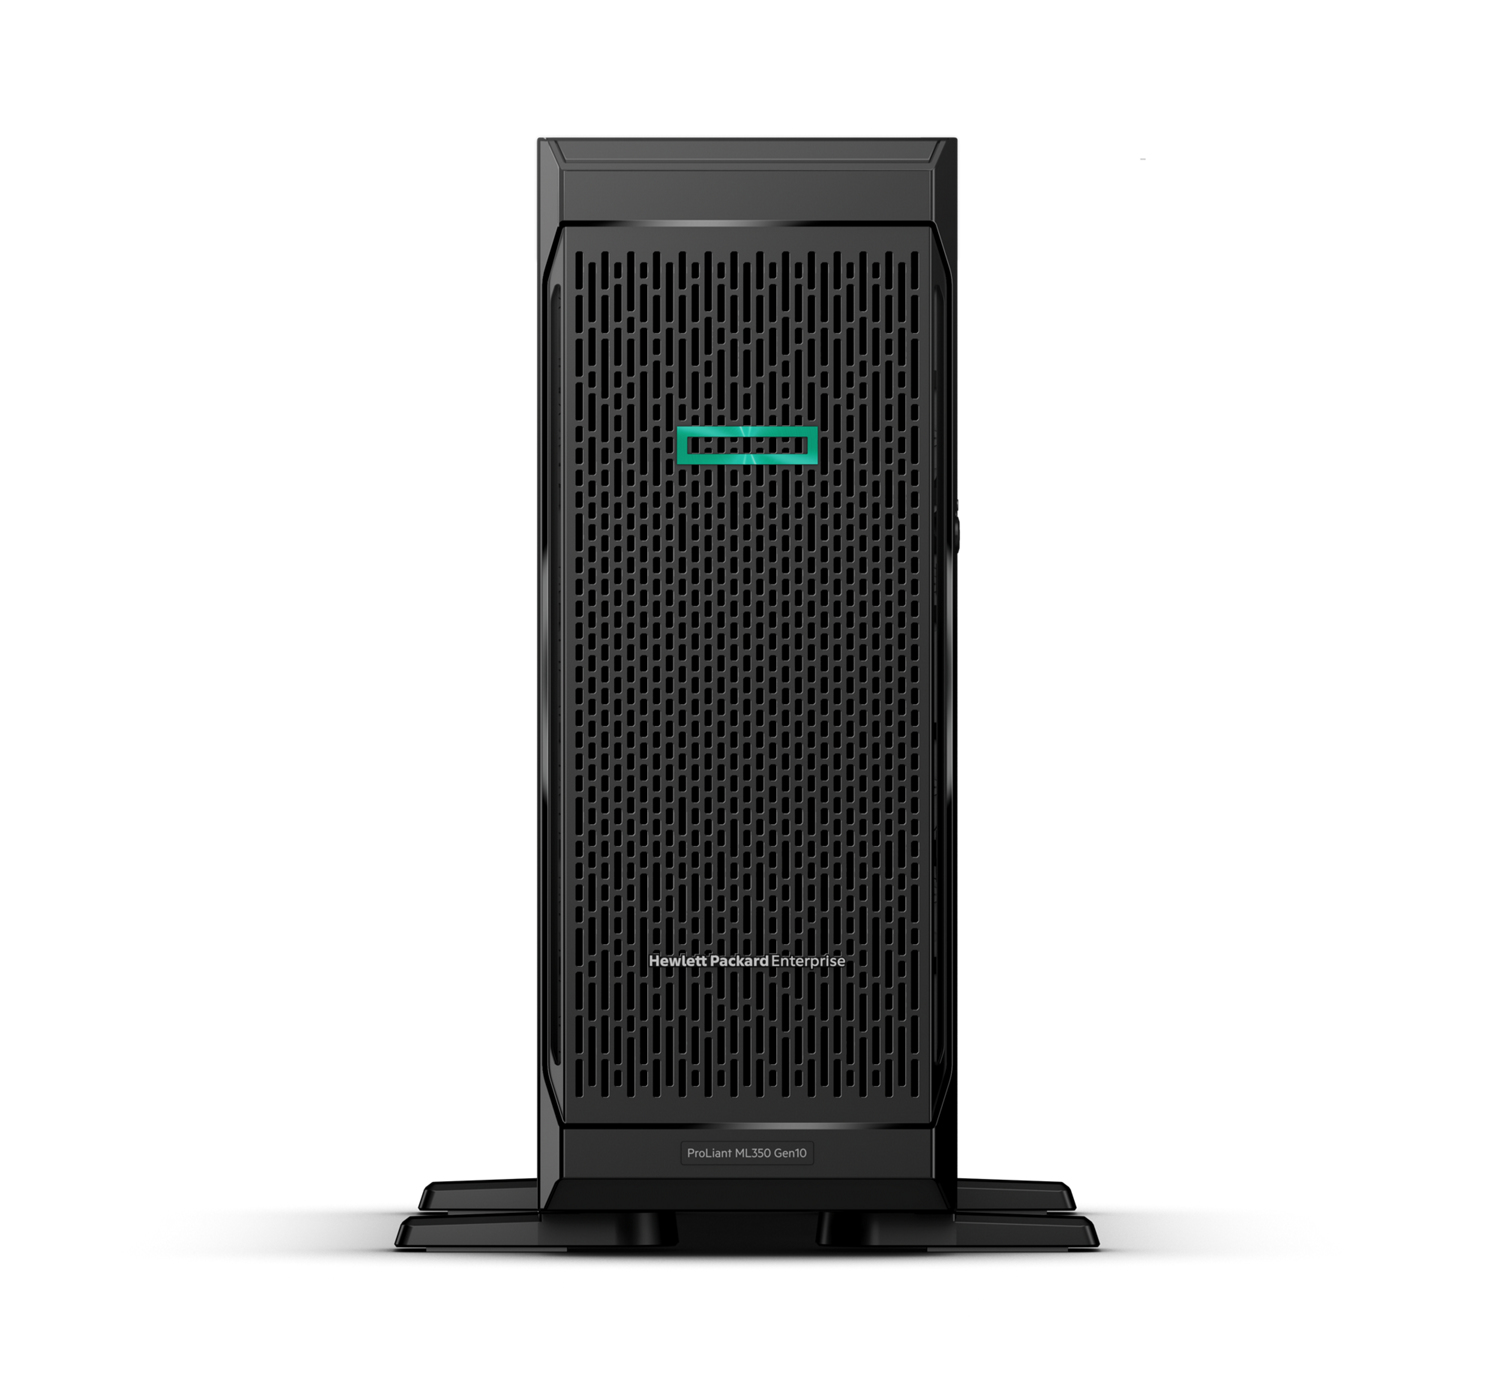 Hewlett Packard Enterprise ProLiant ML350 Gen10 + Windows Server 2019 Standard ROK servidor Intel® Xeon® Gold 2,1 GHz 32 GB DDR4-SDRAM 48 TB Torre (4U) 800 W